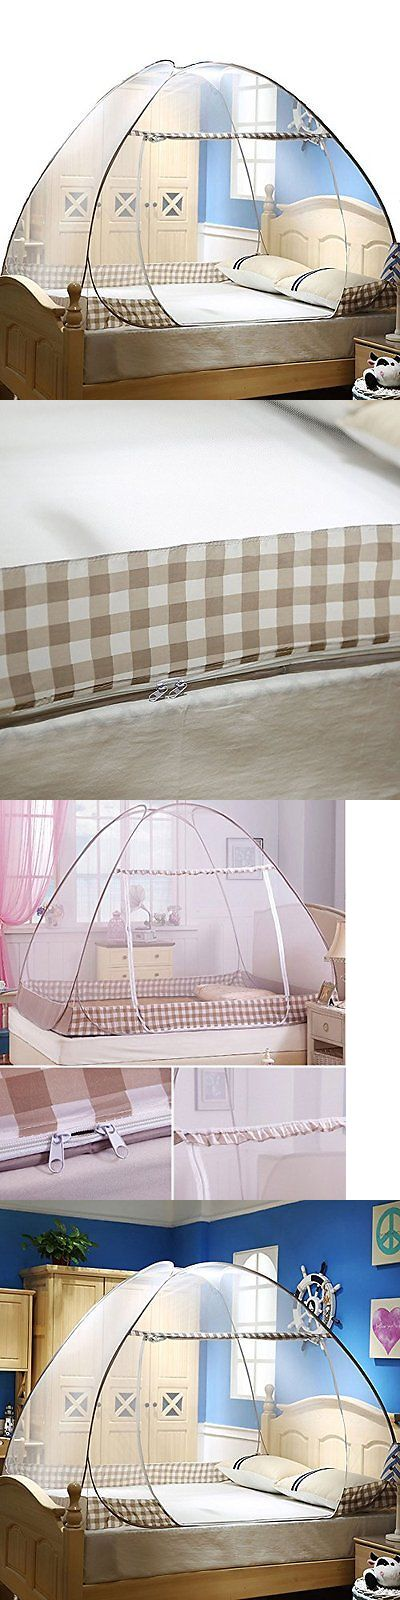 Canopies and Netting 180905: Folding Mosquito Net Tent Canopy Curtains For Beds Home Bedroom Decor 1.8X2.0M C -> BUY IT NOW ONLY: $47.14 on eBay!